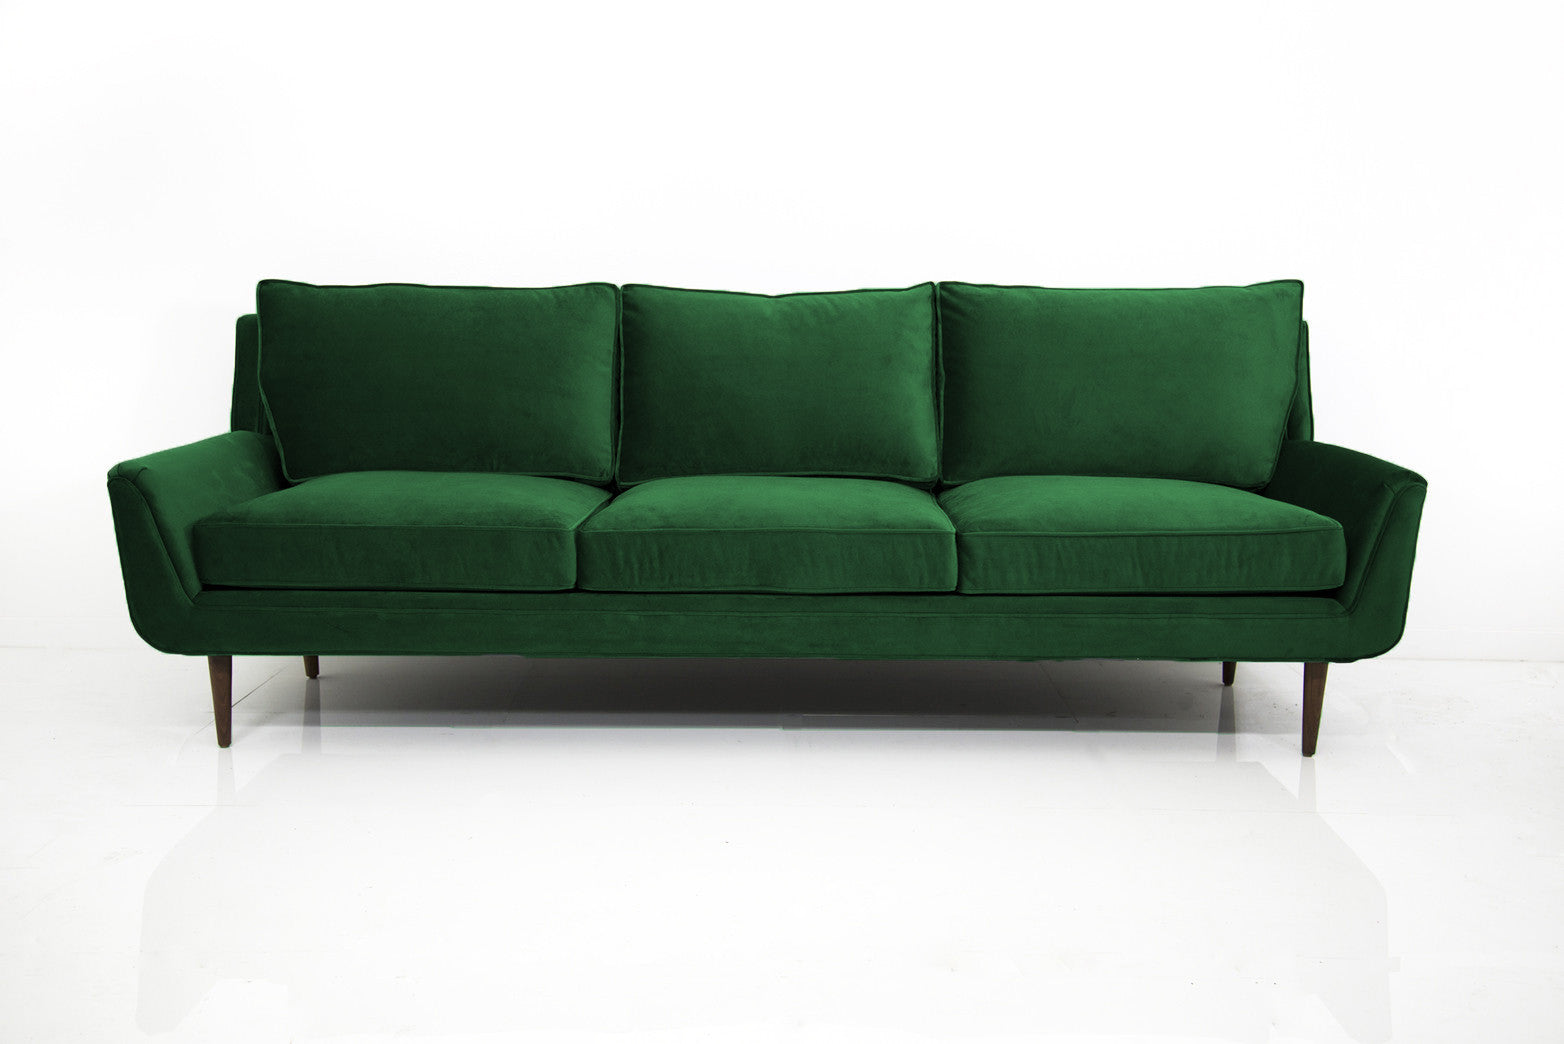 Stockholm Sofa in Emerald Green Velvet